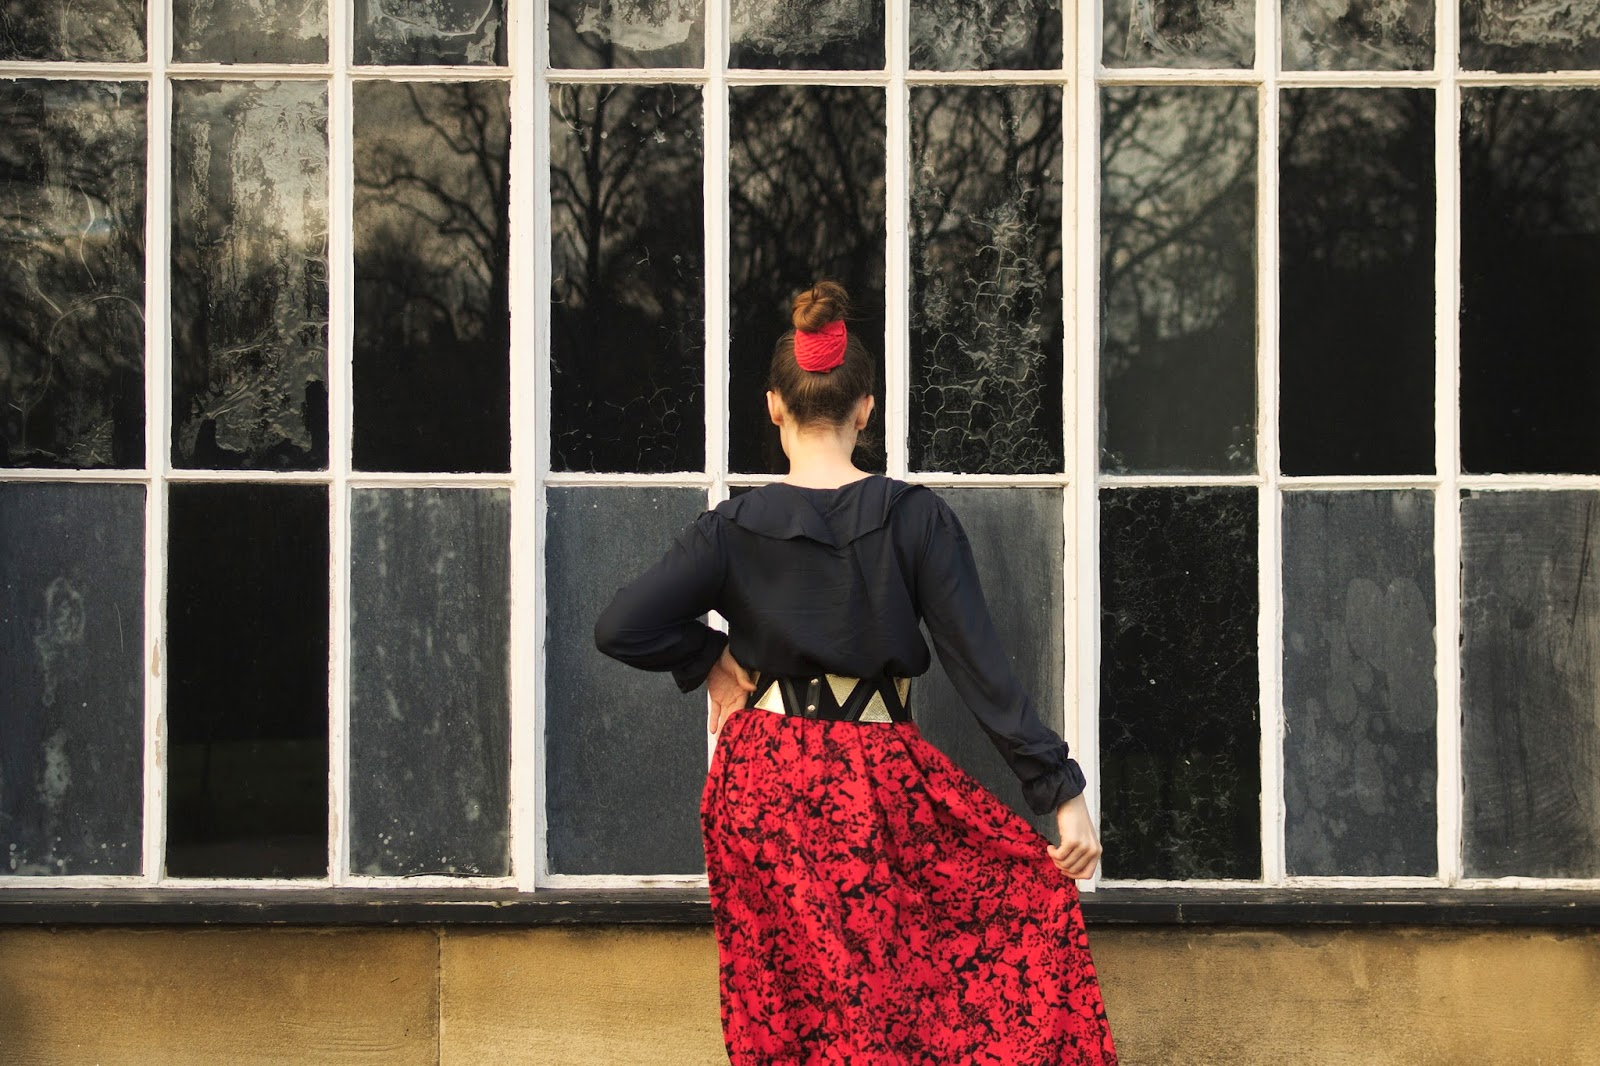 Sun and red vintage skirt.